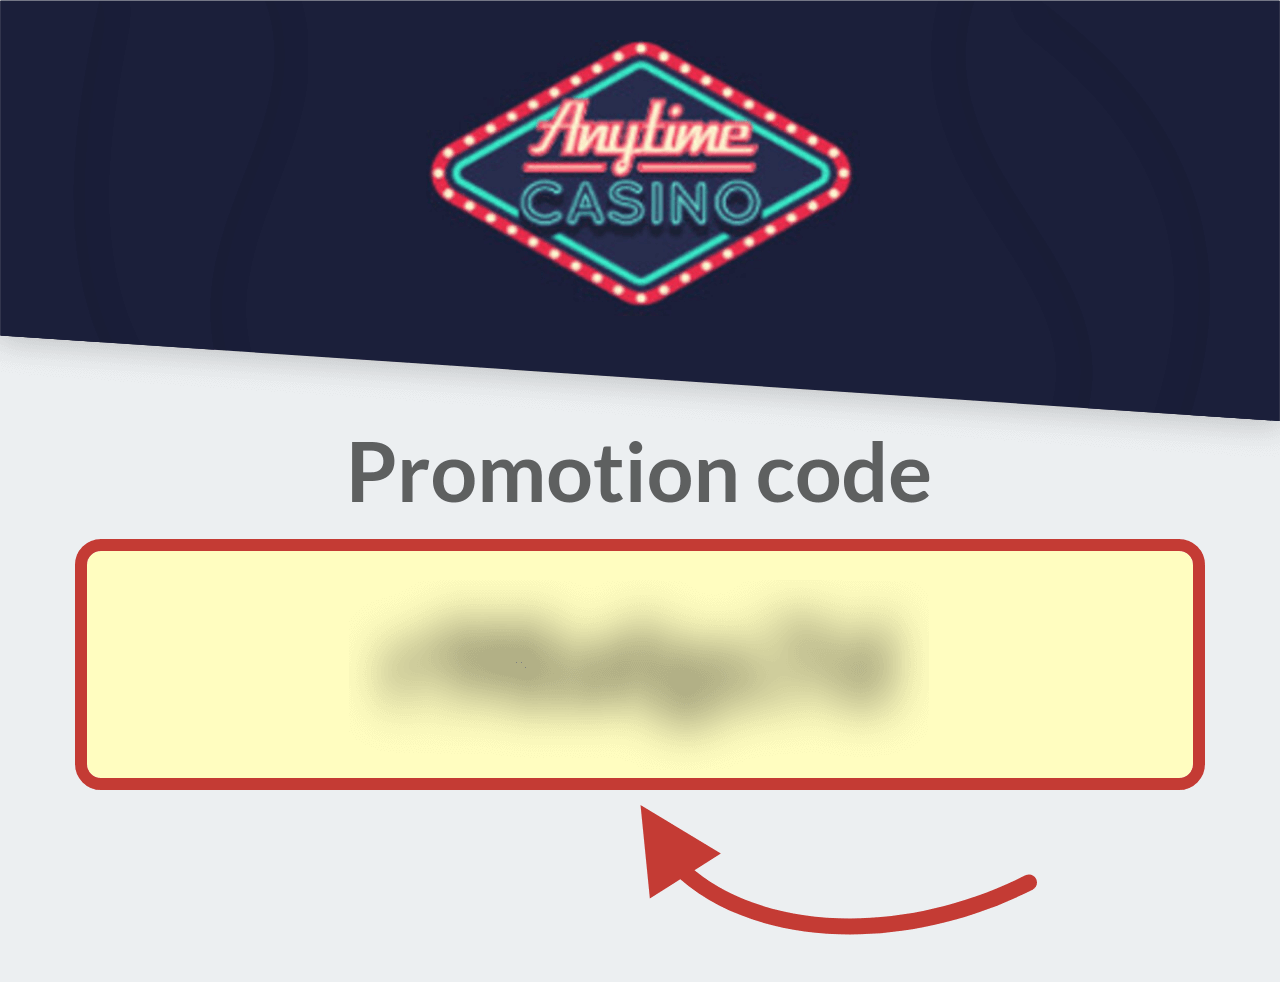 Anytime Casino Promotion Code